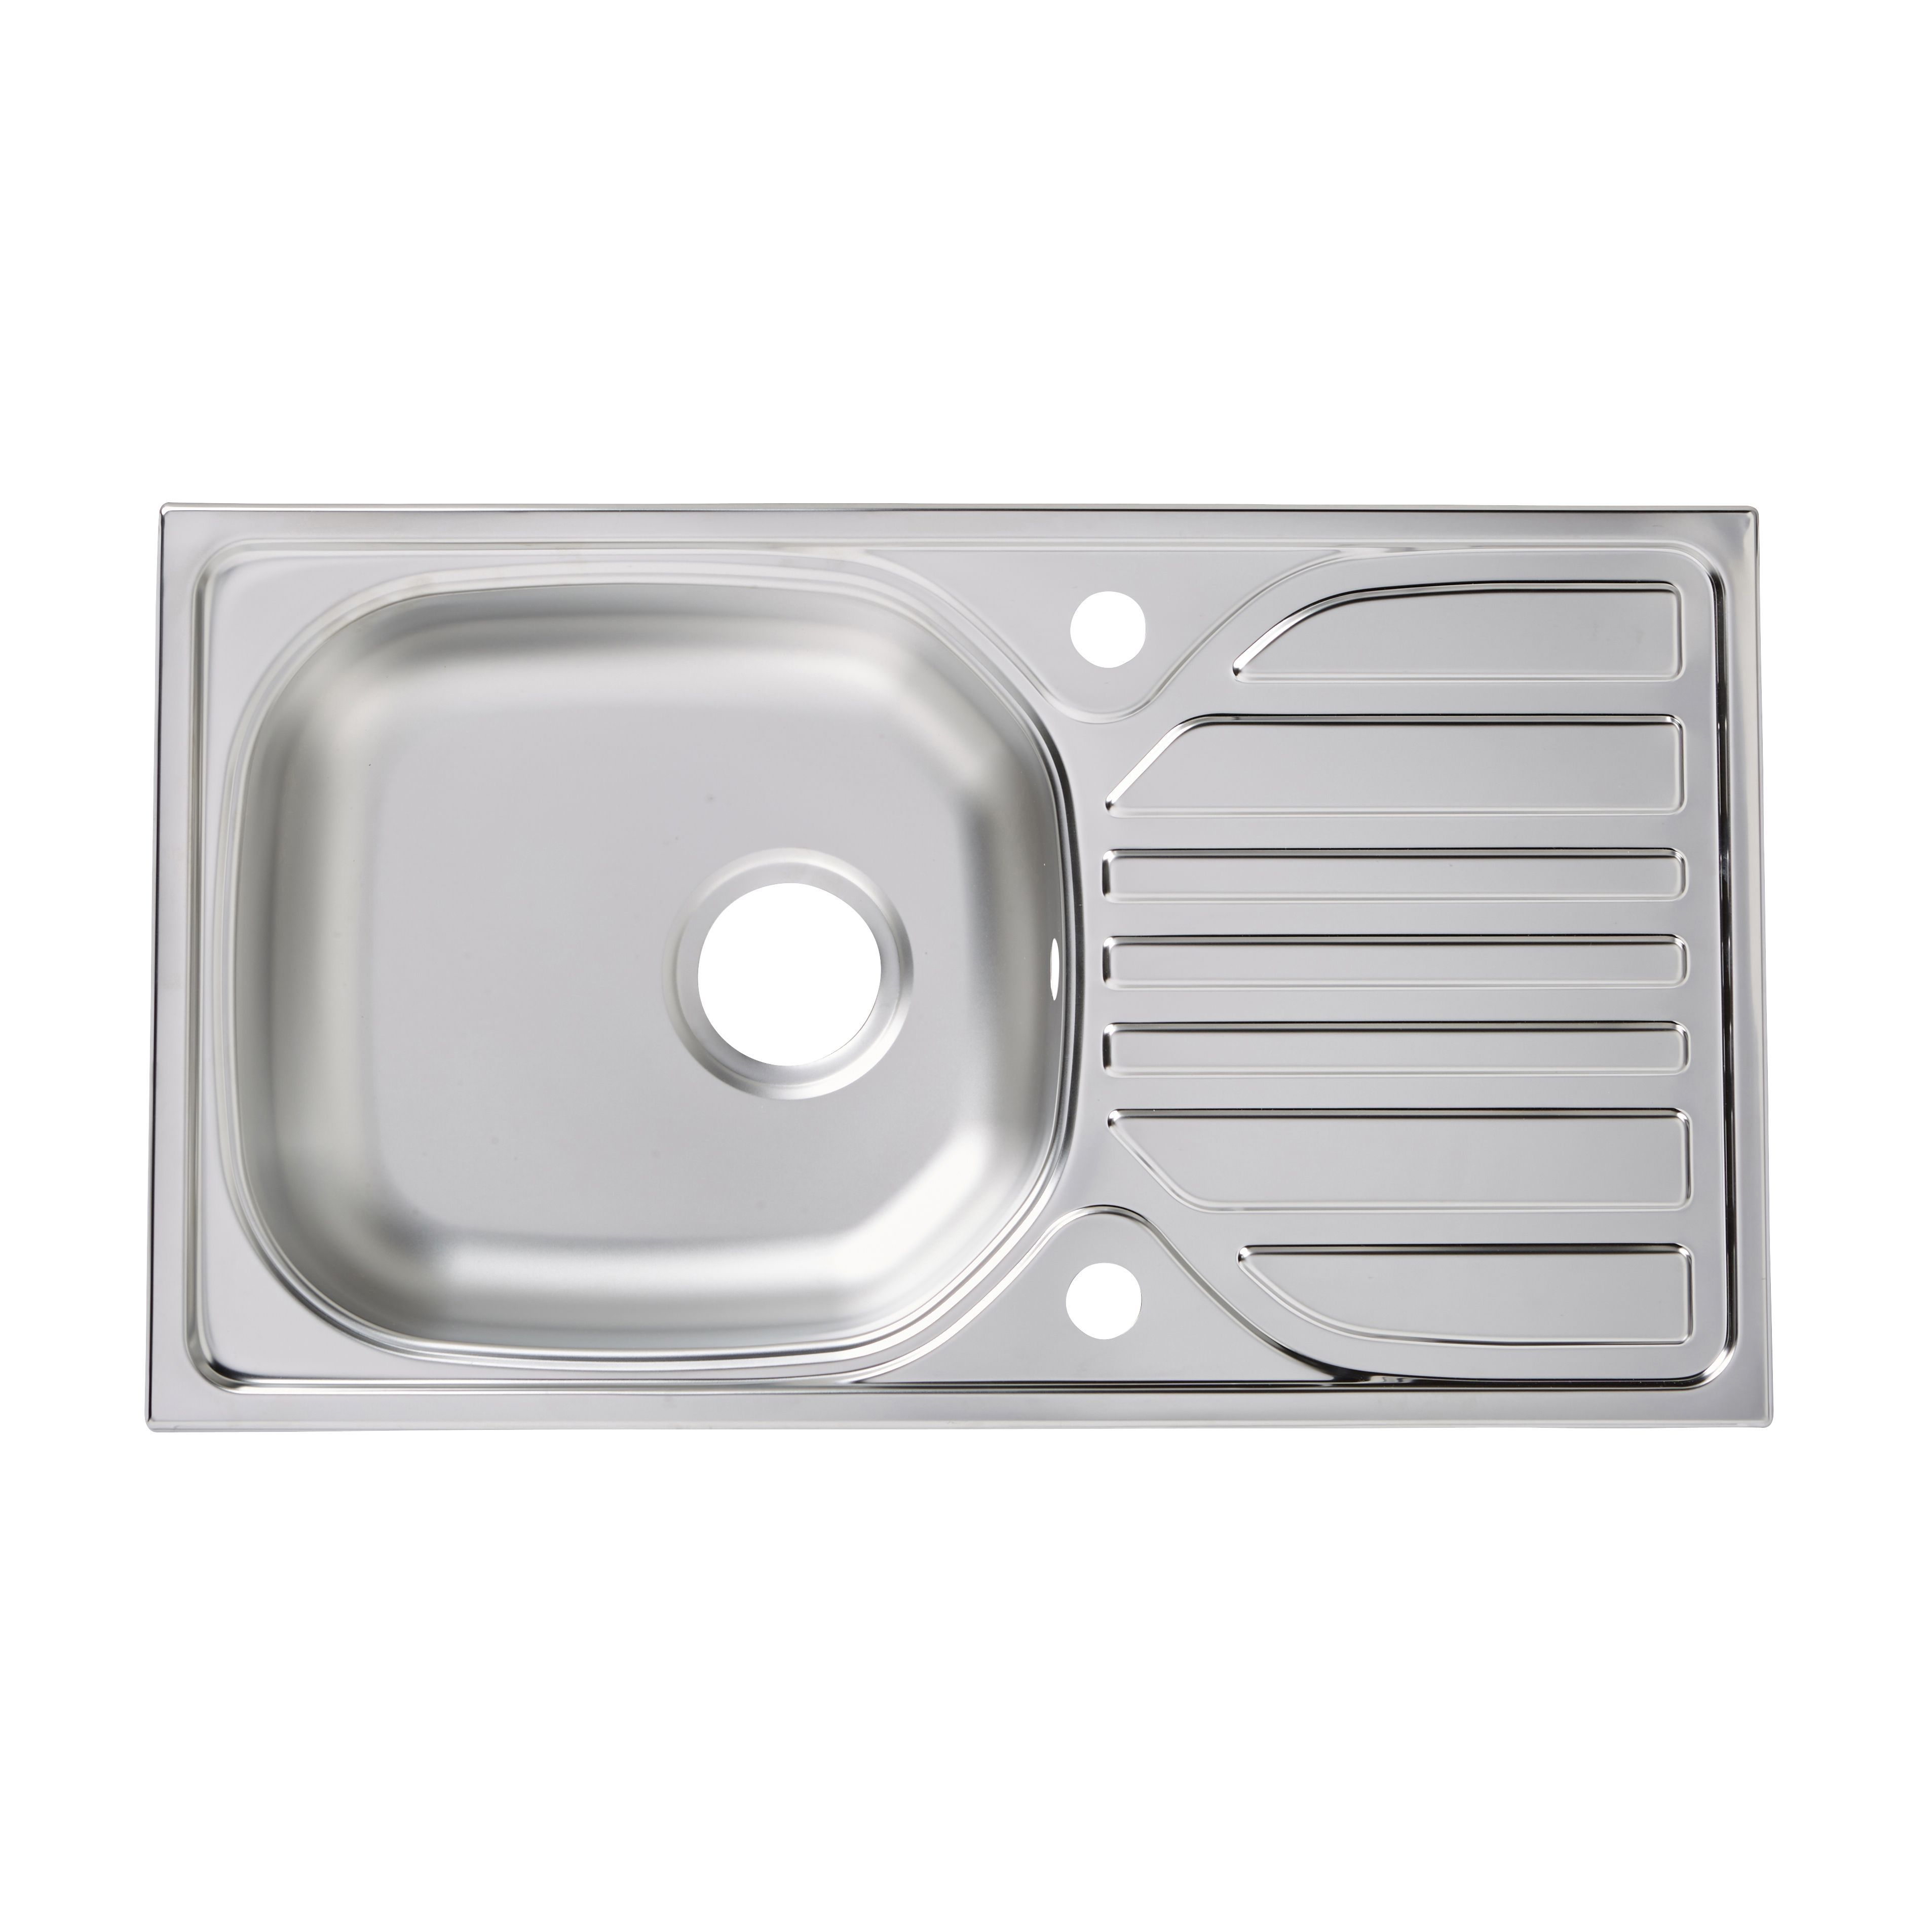 Turing 1 Bowl Stainless Steel Sink & Drainer